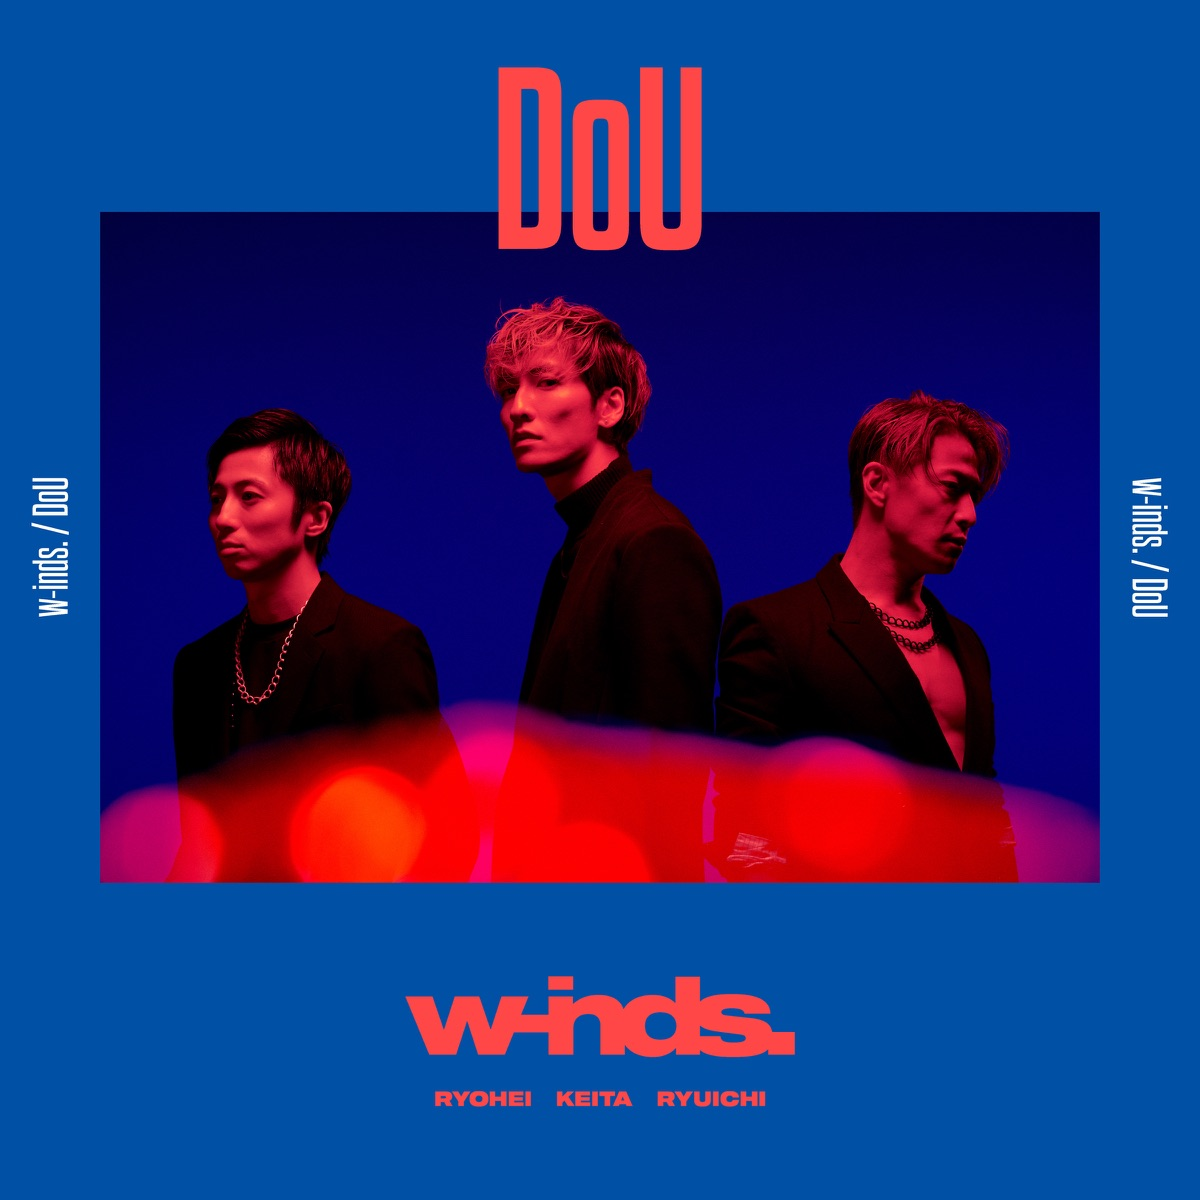 『w-inds. - We Don't Need To Talk Anymore Remix feat. SKY-HI』収録の『DoU』ジャケット